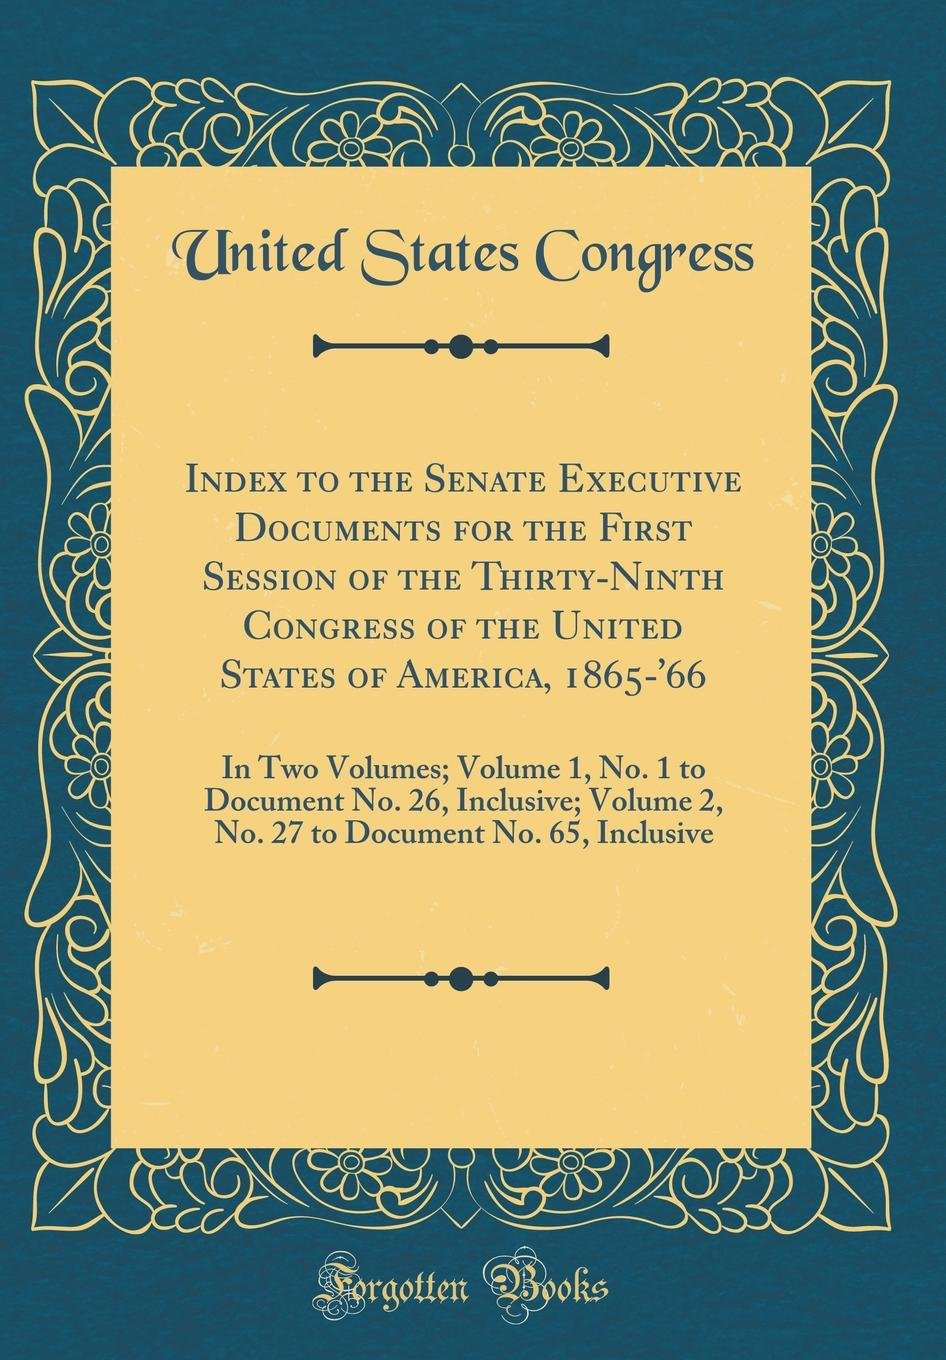 Download Index to the Senate Executive Documents for the First Session of the Thirty-Ninth Congress of the United States of America, 1865-'66: In Two Volumes; ... 2, No. 27 to Document No. 65, Inclusive pdf epub